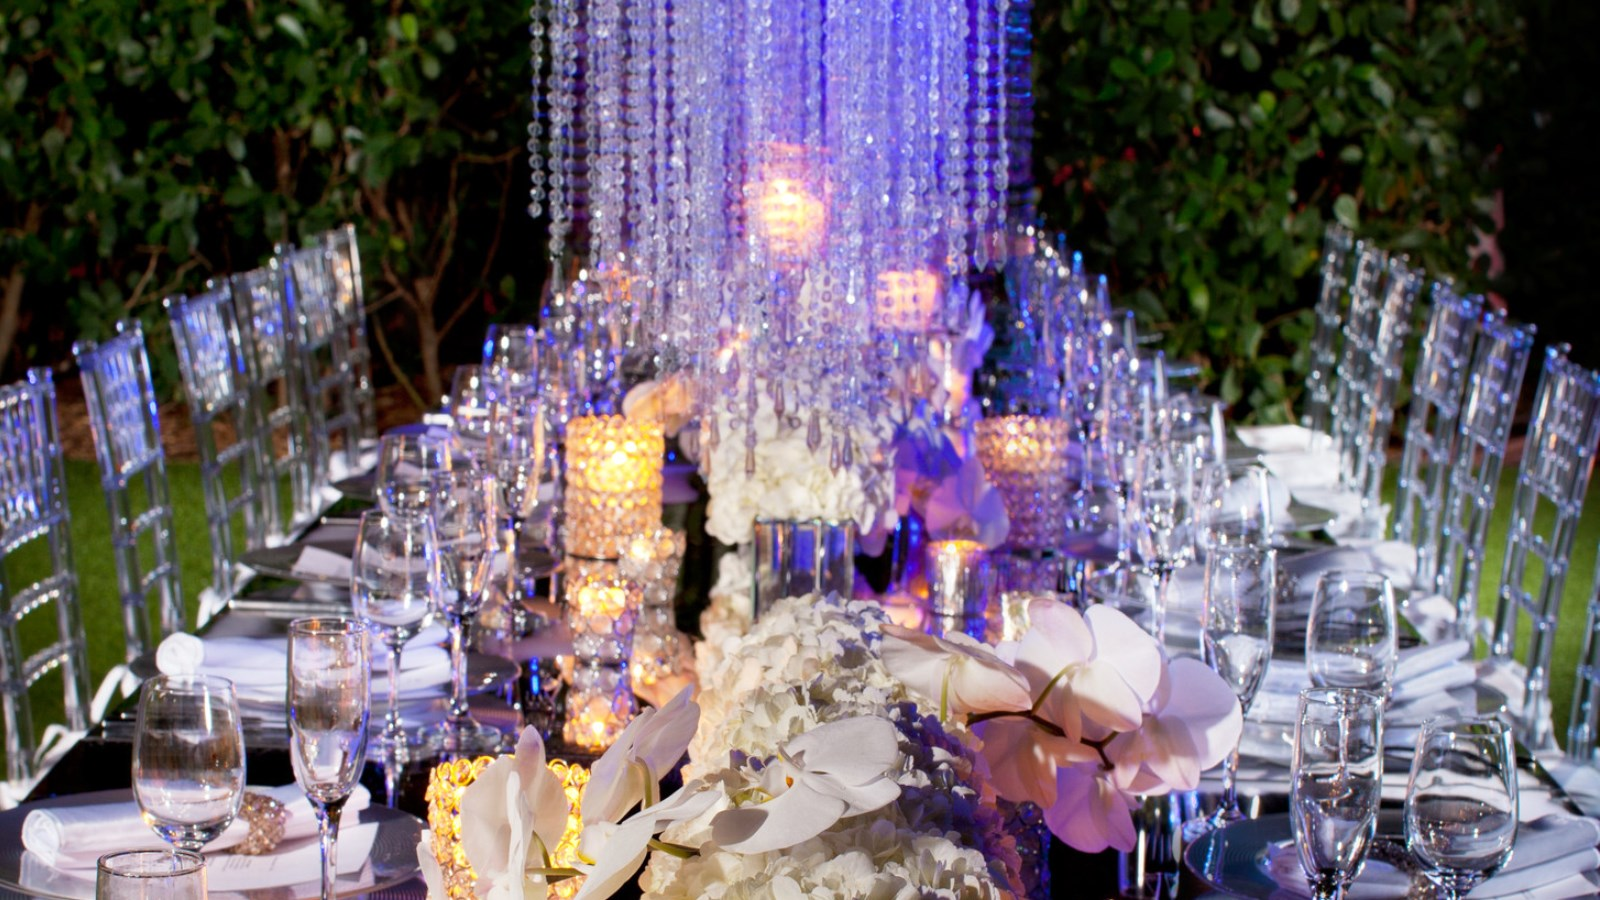 Wedding venues in miami south beach weddings w south beach wedding venues in miami lawn reception w south beach junglespirit Choice Image